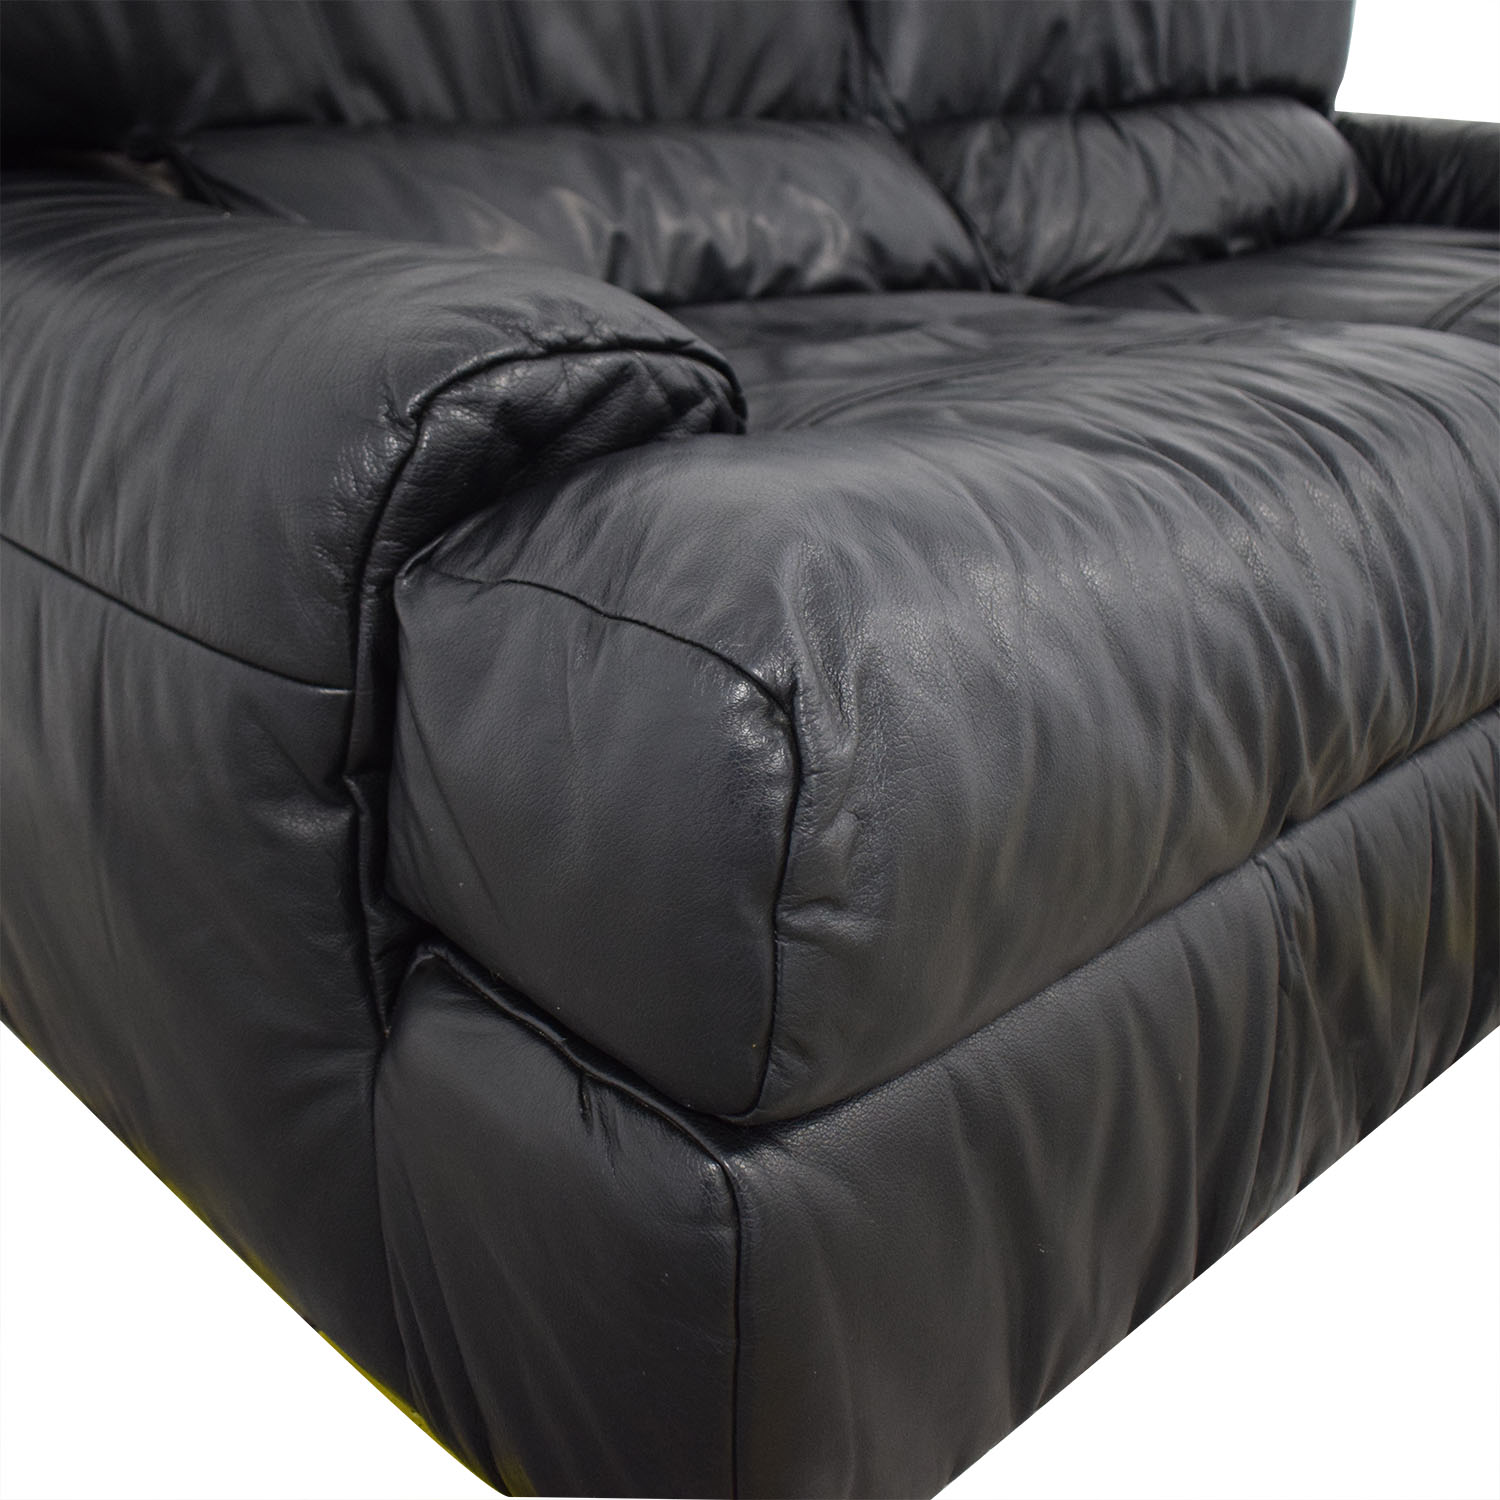 Natuzzi Natuzzi Black Leather Loveseat nj